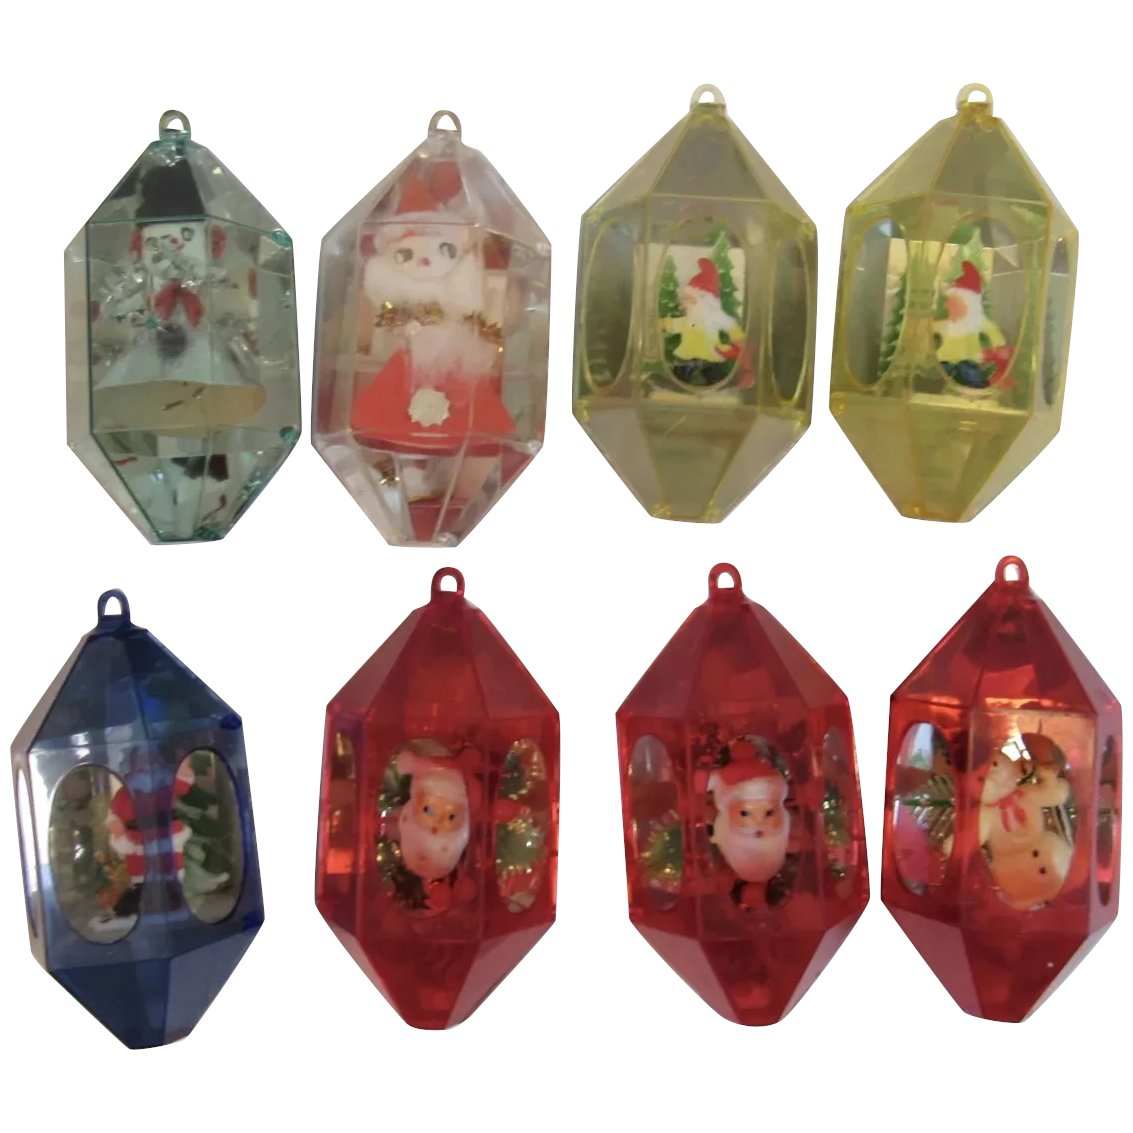 Christmas Diorama Ornaments.8 Vintage Diorama Christmas Ornaments 1950s Hard Plastic Jewel Brite Santas Snowmen Elves Elf Gnome Jewelbrite